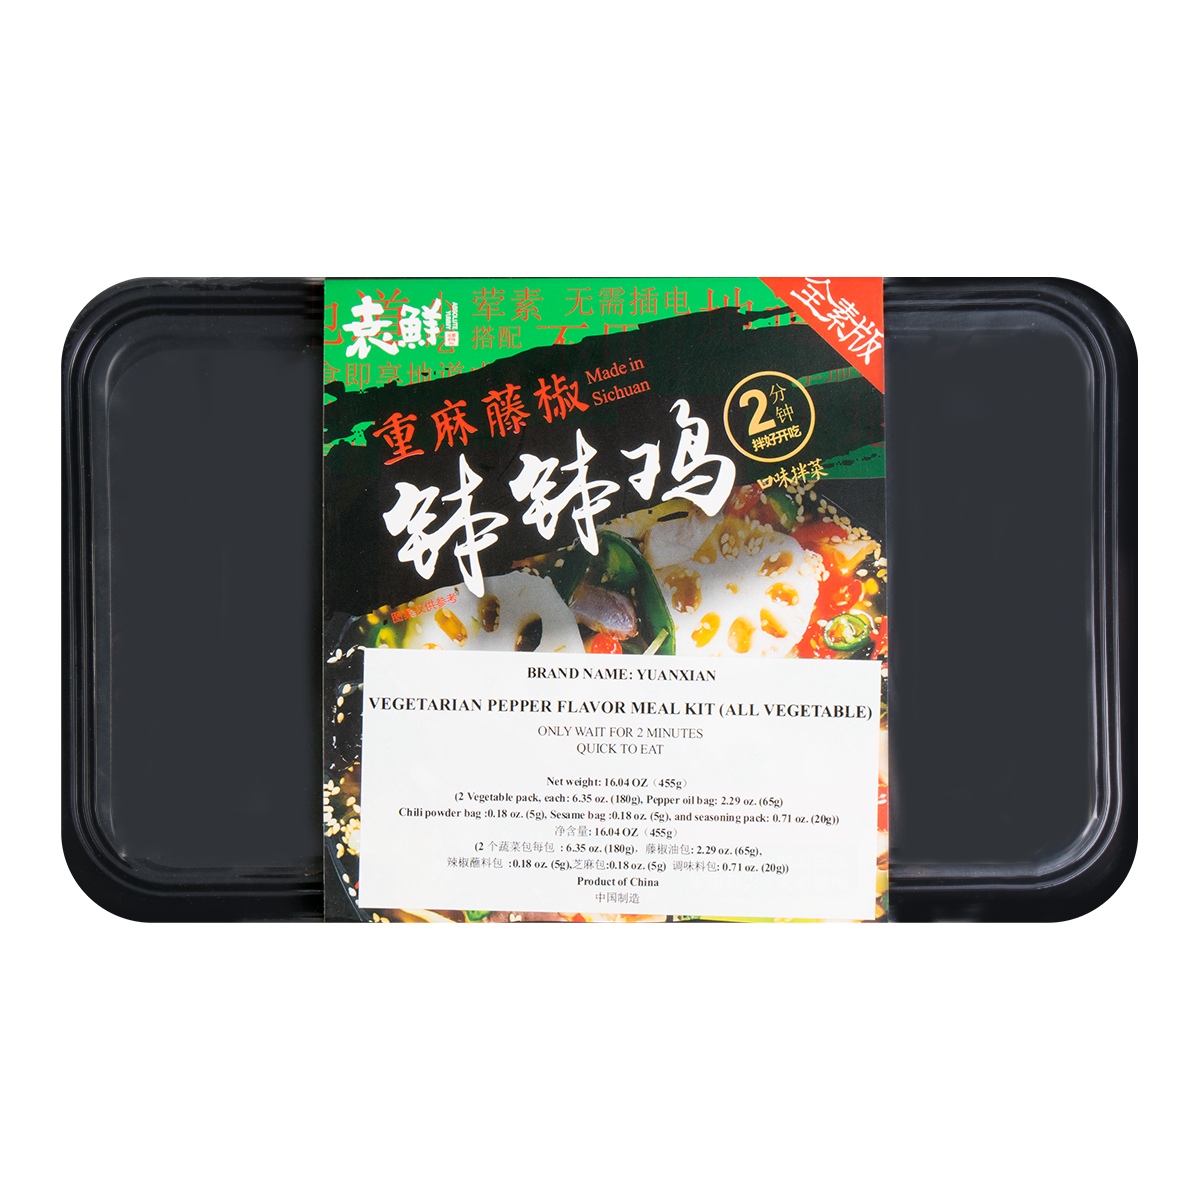 Yamibuy.com:Customer reviews:YUANXIAN Vegetarian Pepper Flavor Meal Kit 455g